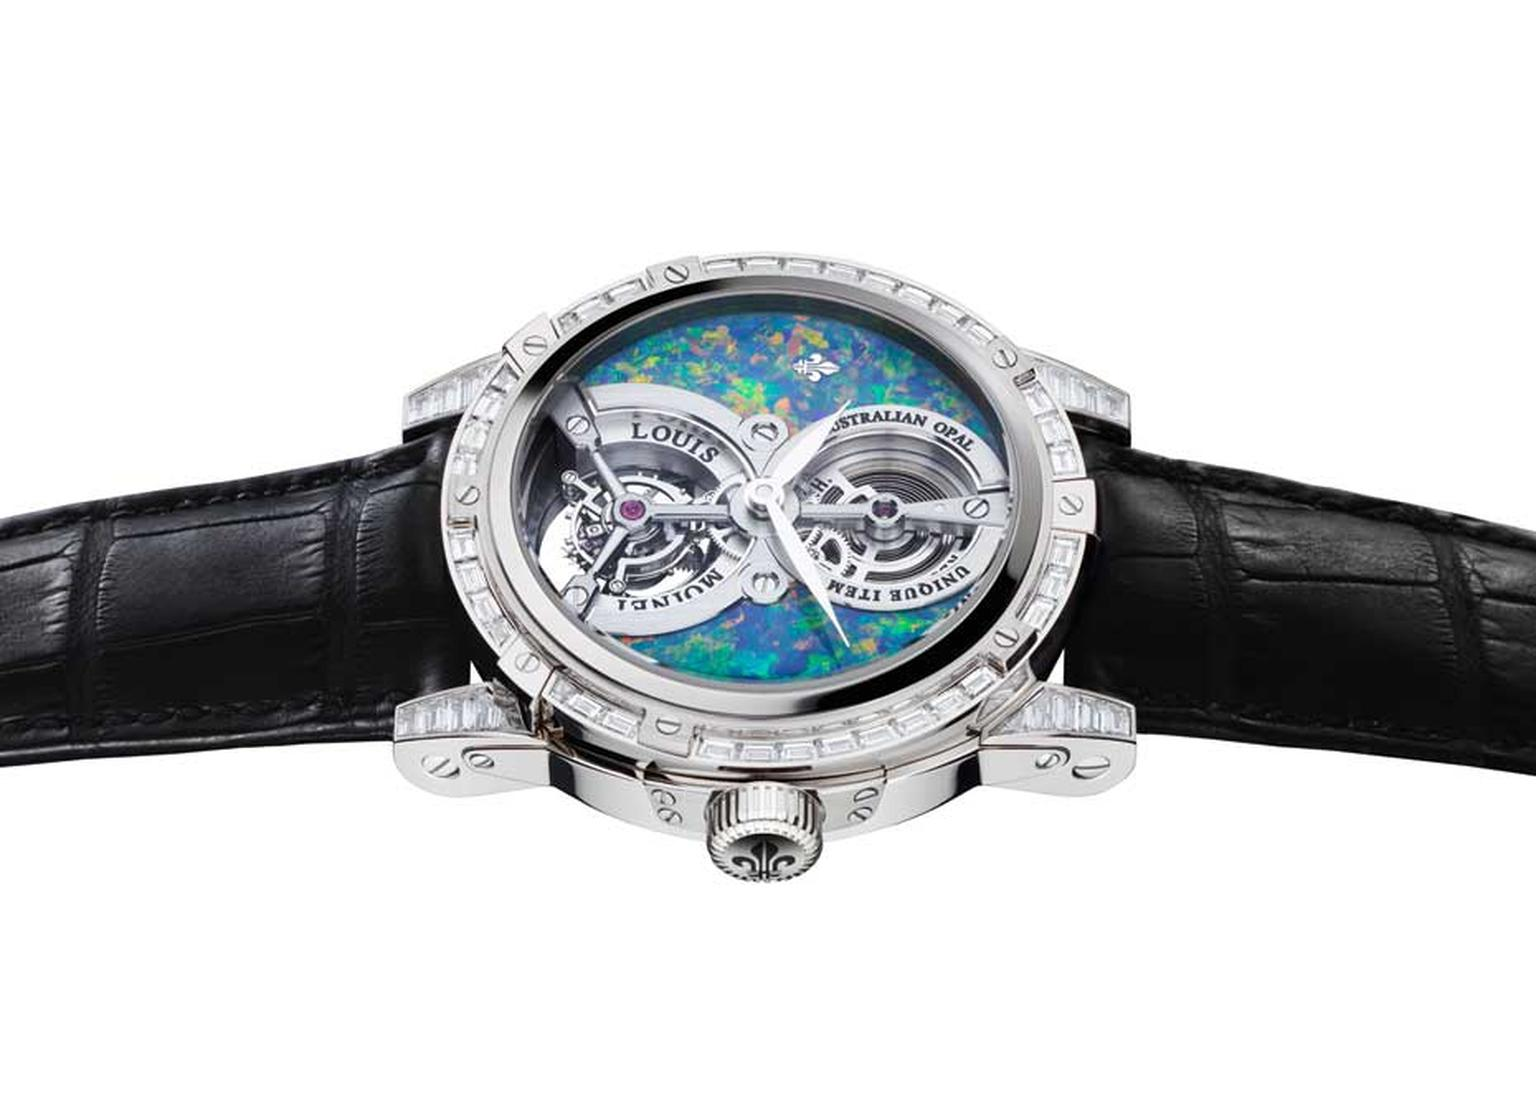 Louis Moinet opal watch from the Treasures of the World collection featuring an Australian opal dial, a tourbillon and an open-worked mainspring in a white gold 47mm case with 56 baguette-cut diamonds.